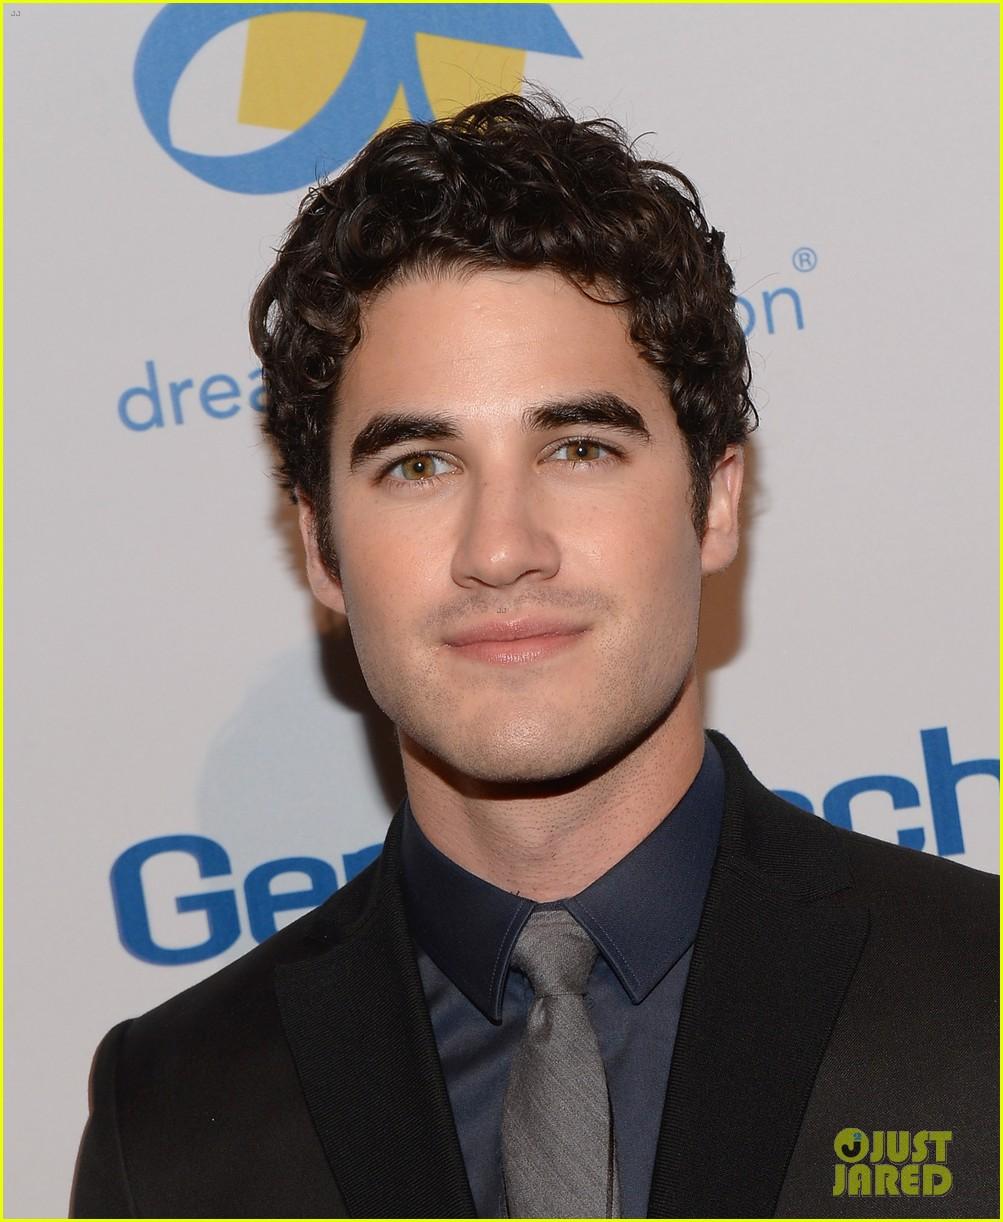 darren criss jane lynch celebration of dreams gala 2013 05